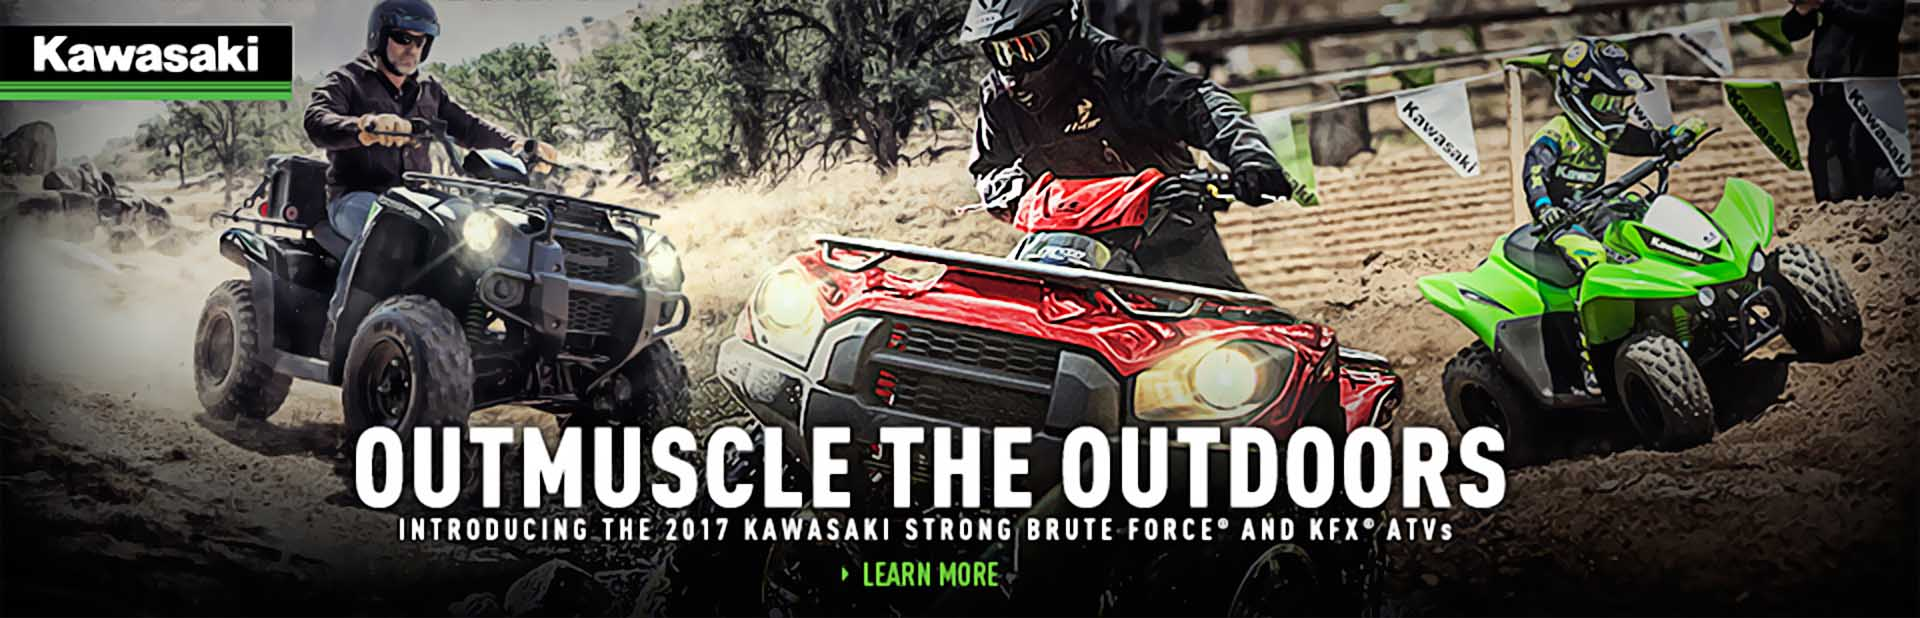 2017 Kawasaki Brute Force and KFX ATVs